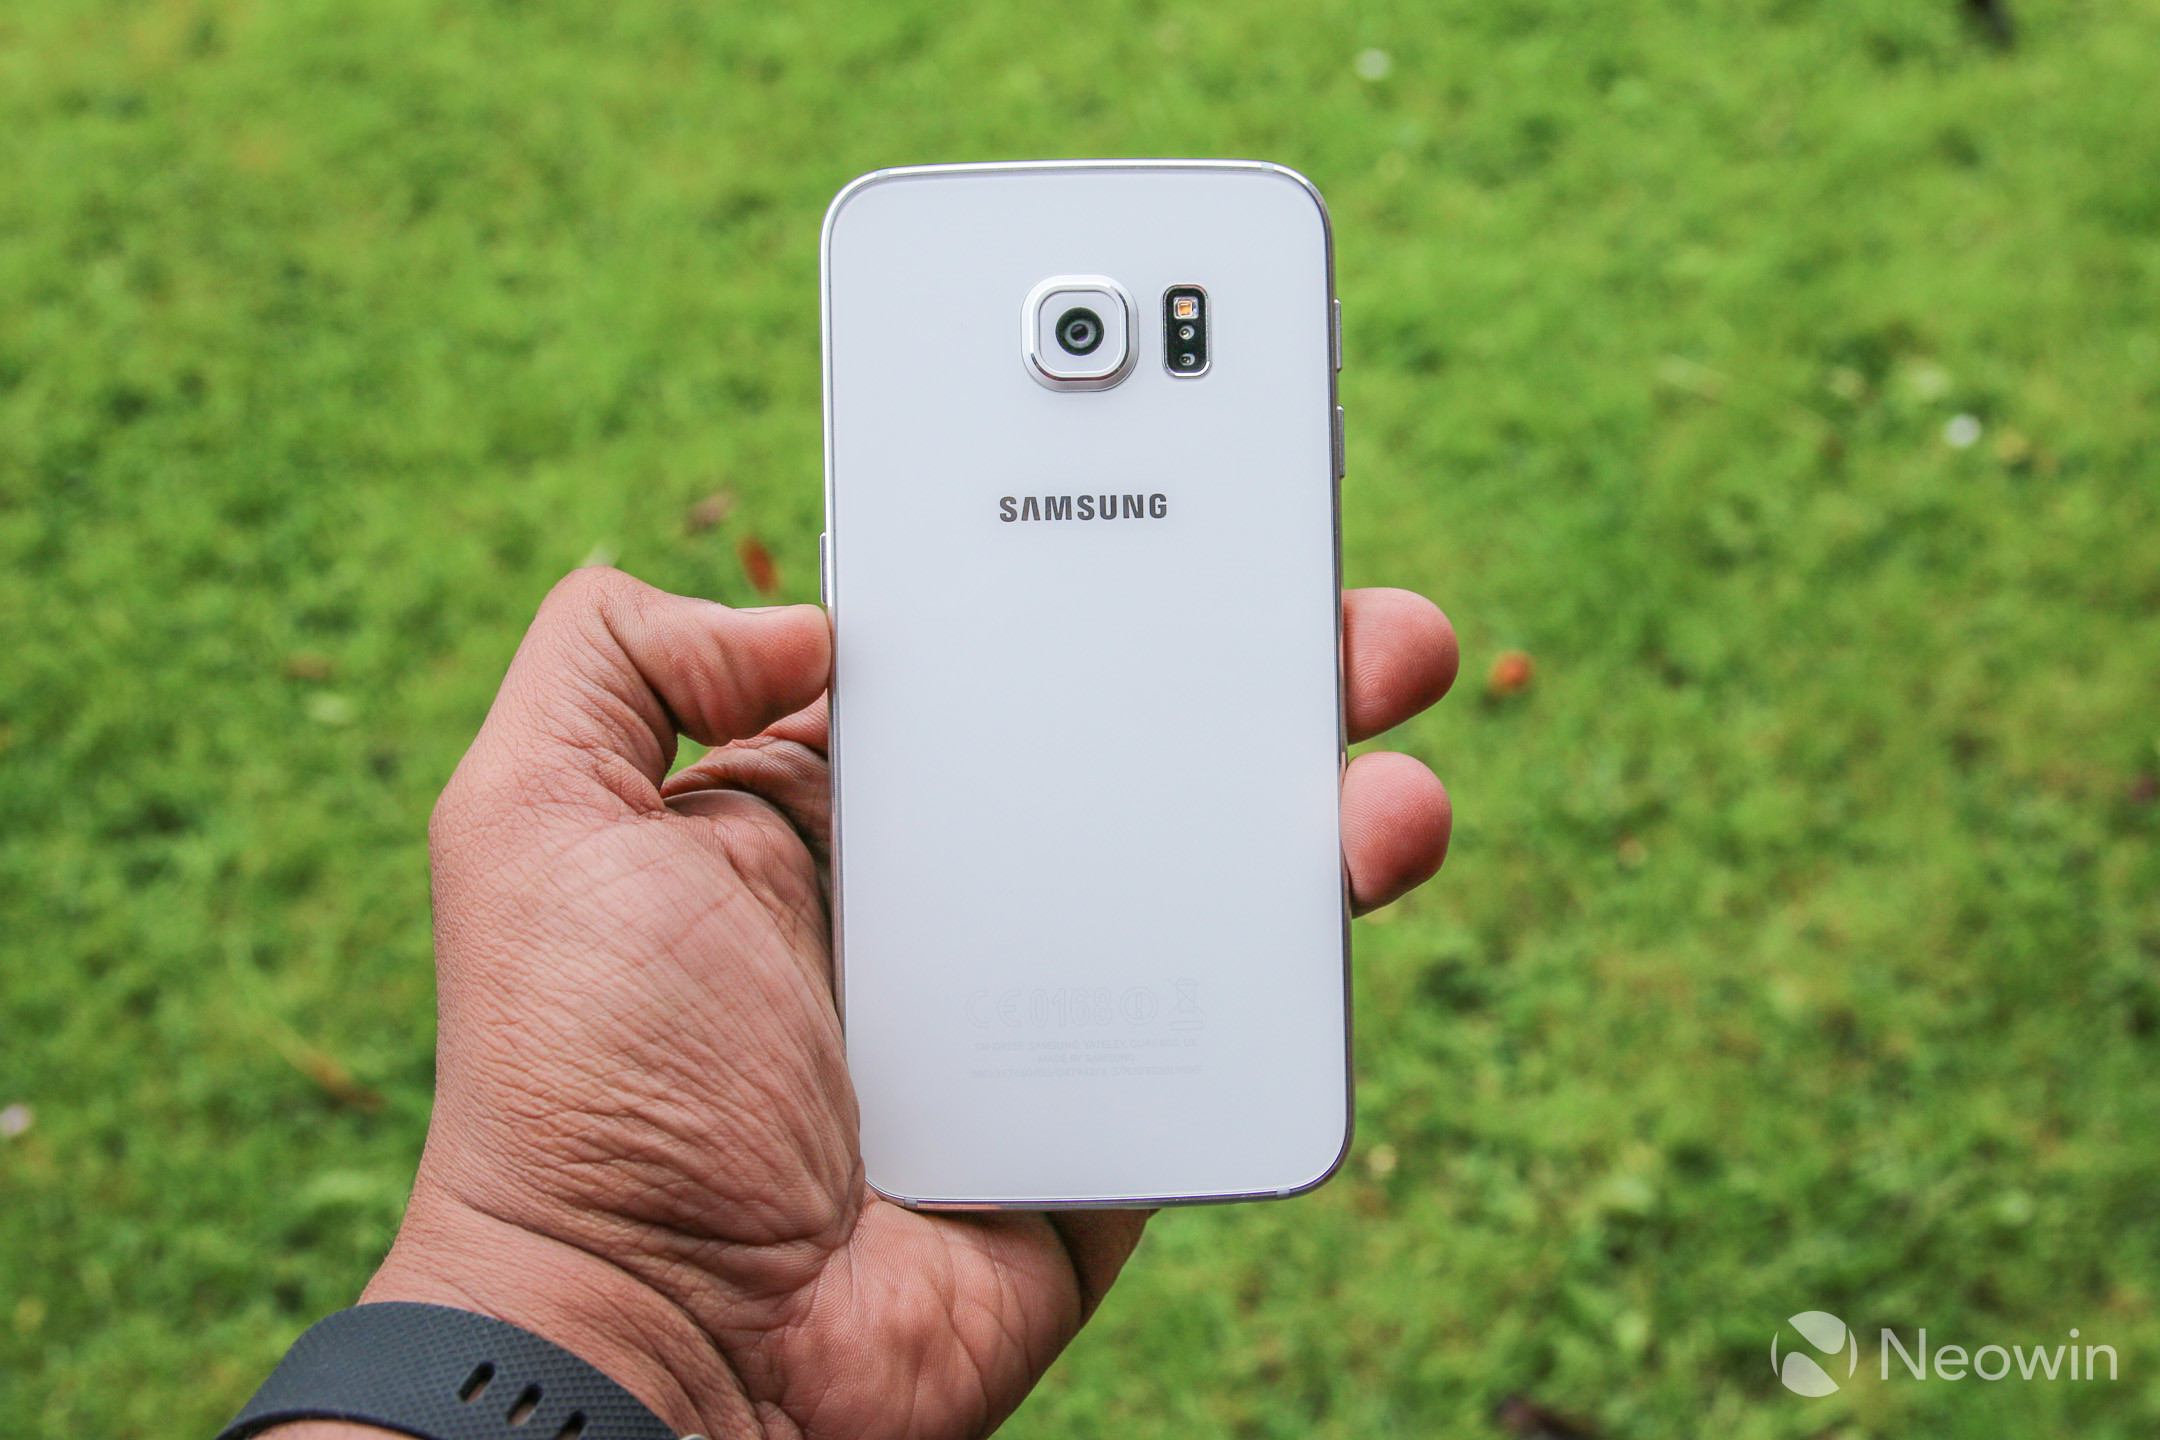 Samsung Galaxy Note 5 will get Android 8.0 Oreo update